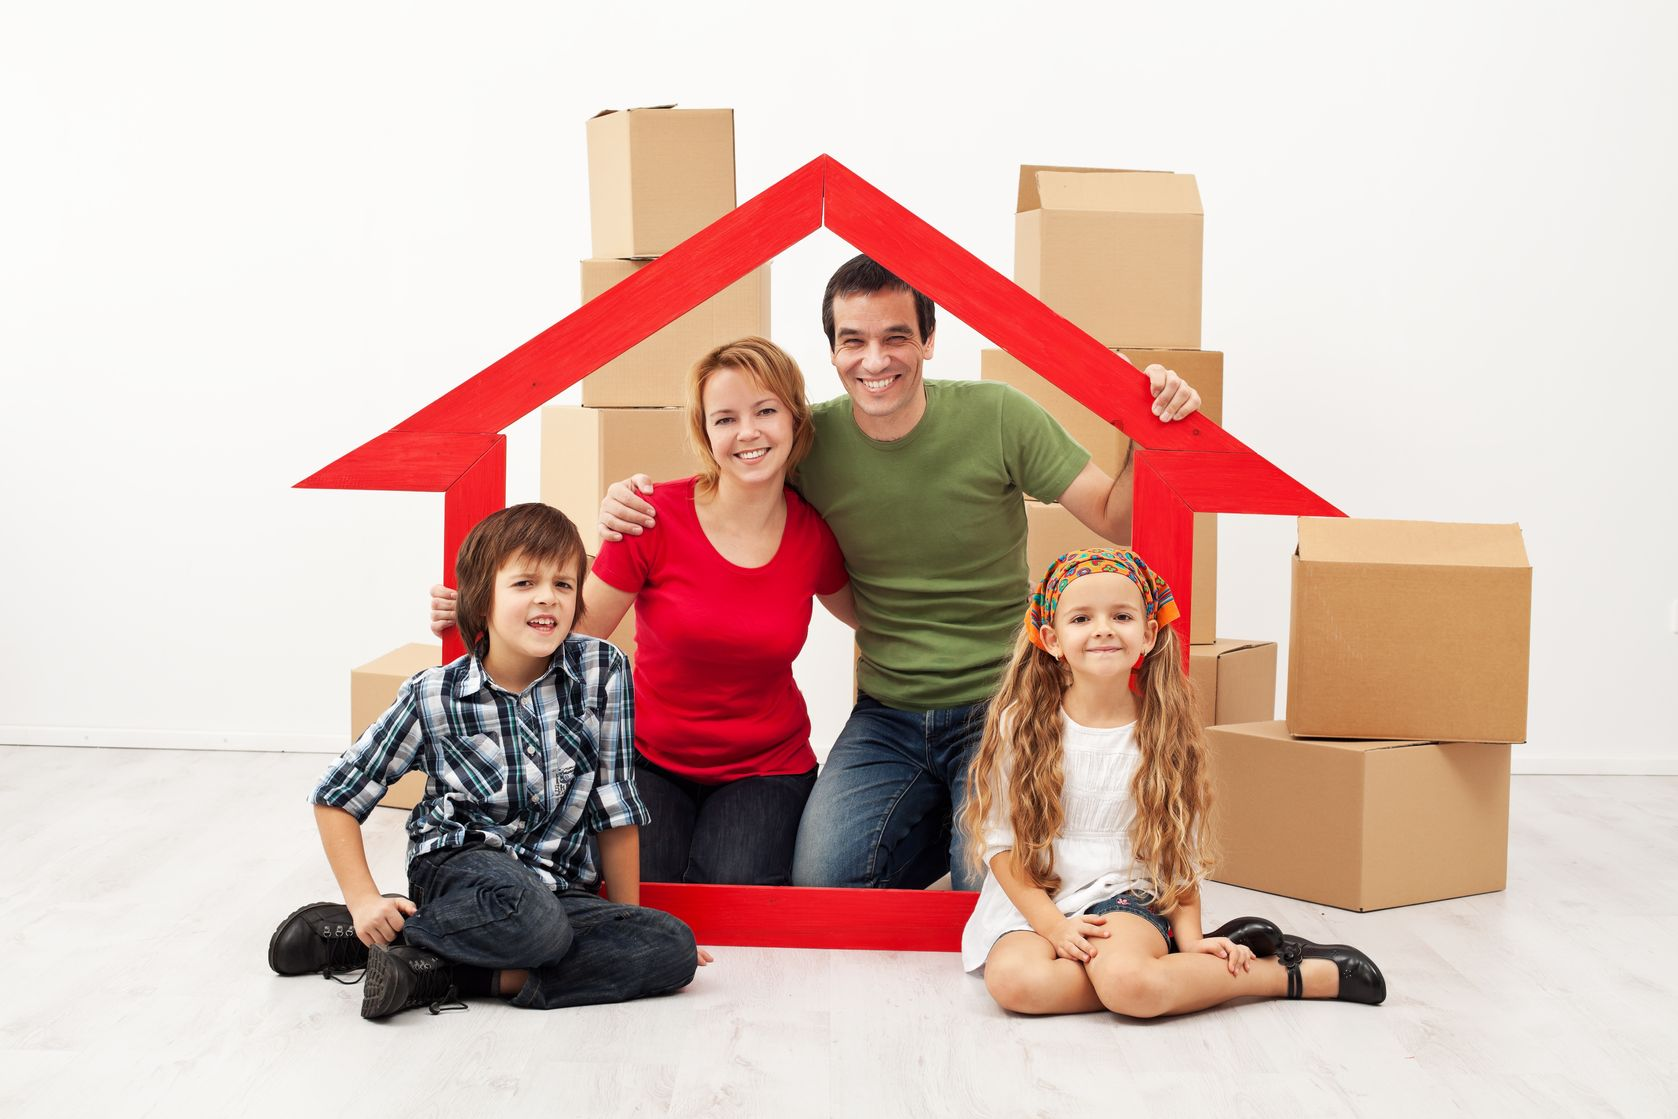 Sacramento, CA. Homeowners Insurance